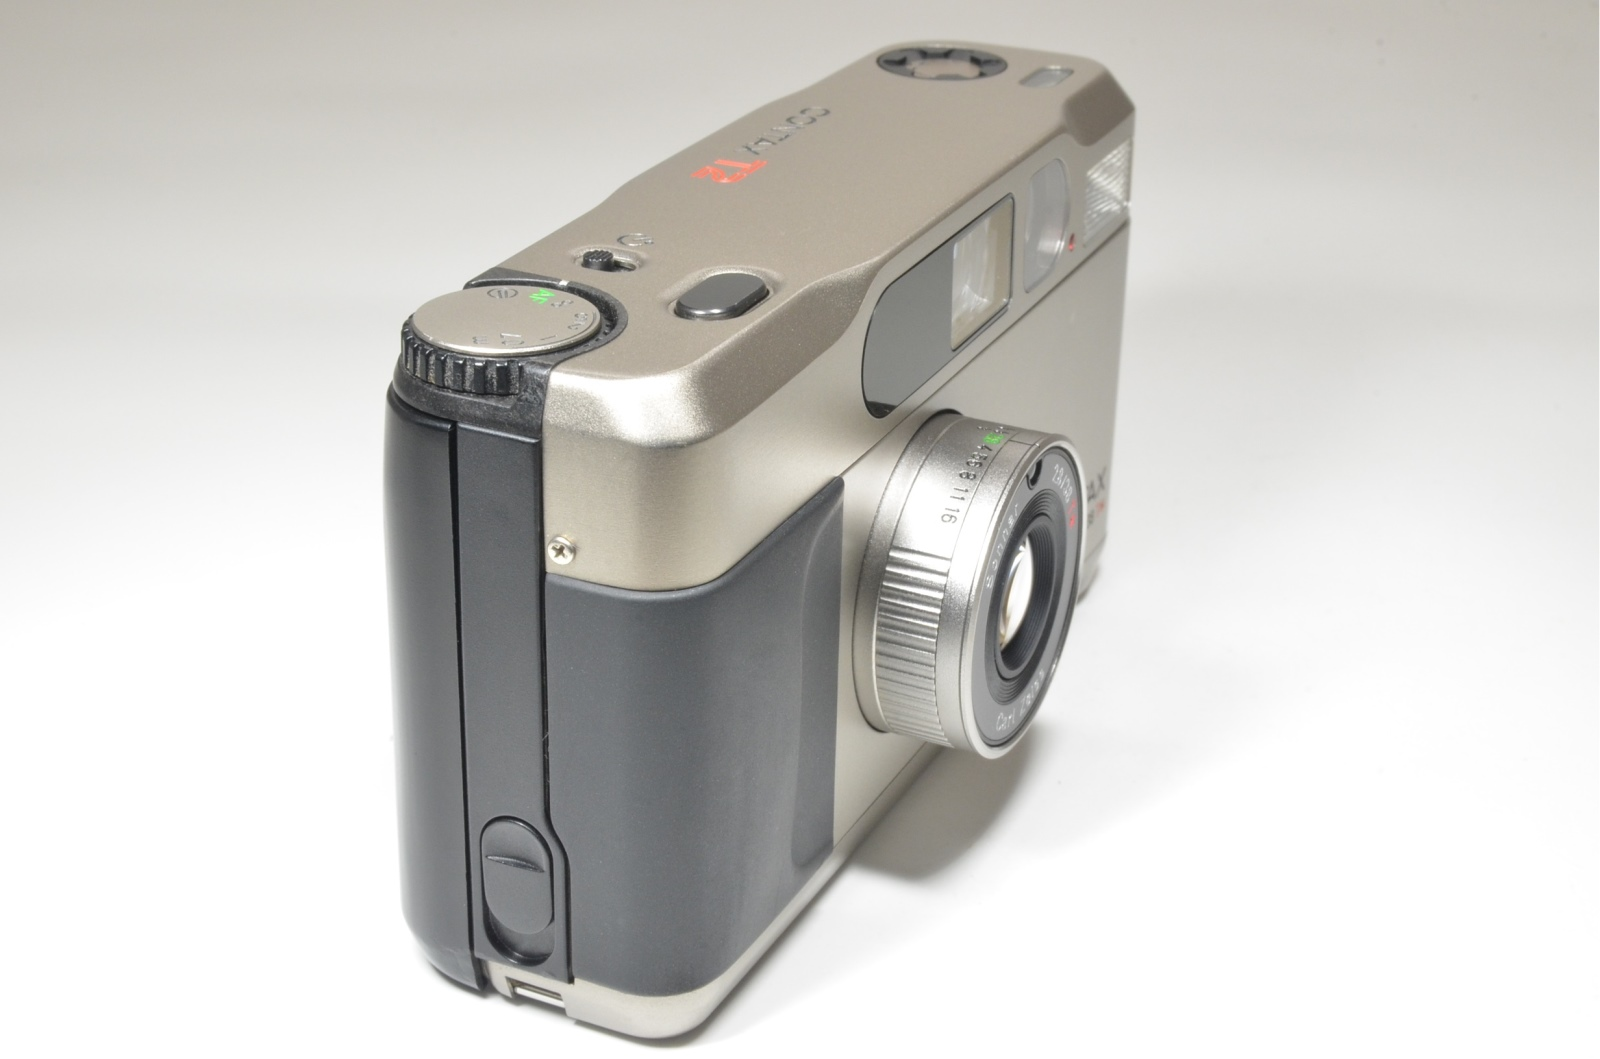 contax t2 data back titanium silver p&s 35mm film camera